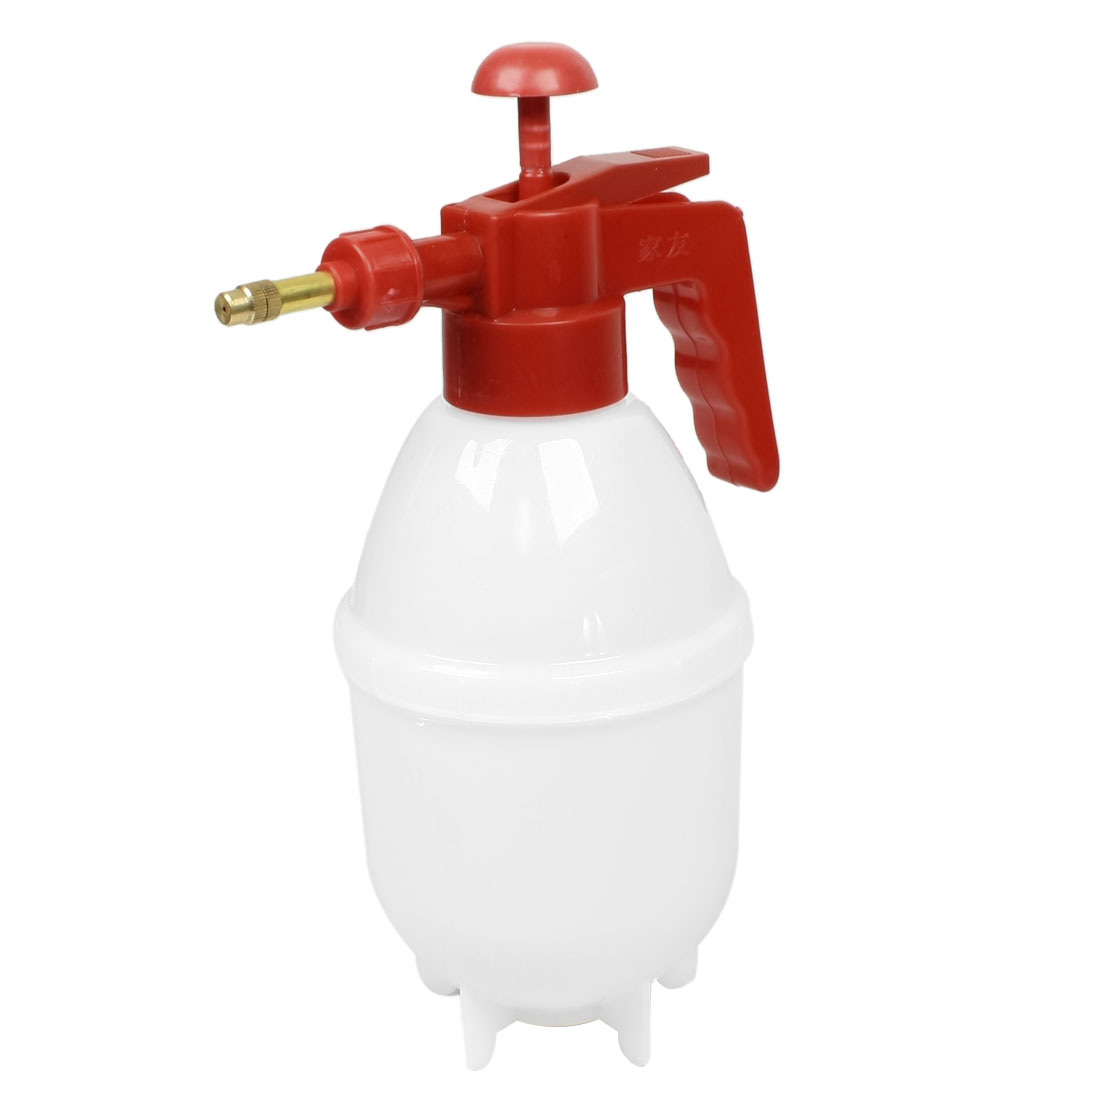 Garden Plant Flower Watering Plastic Spray Bottle Pressurized Sprayer 1288ml